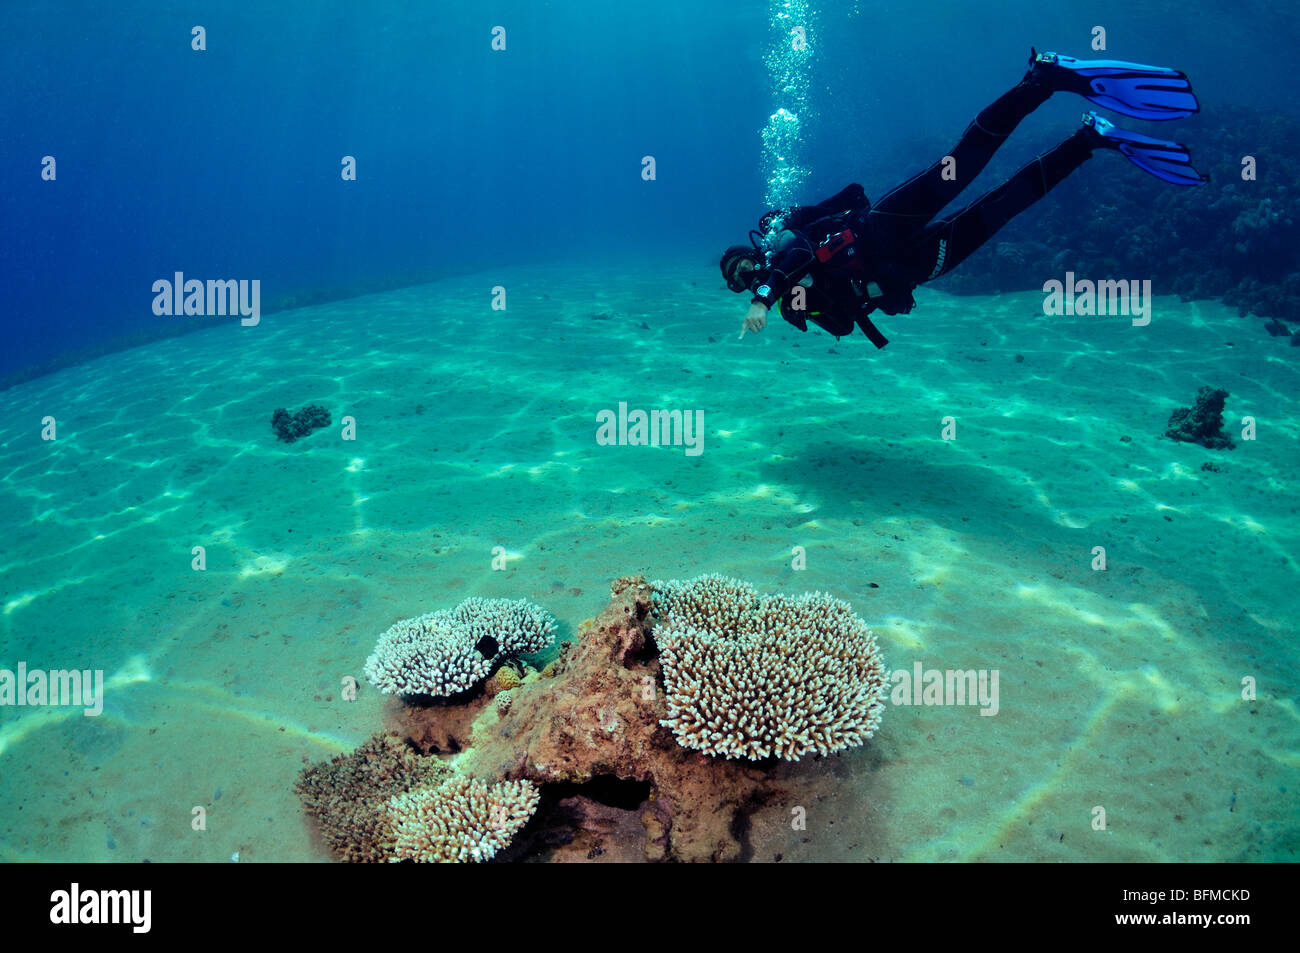 Scuba diver pointing to coral. 'Red Sea' - Stock Image